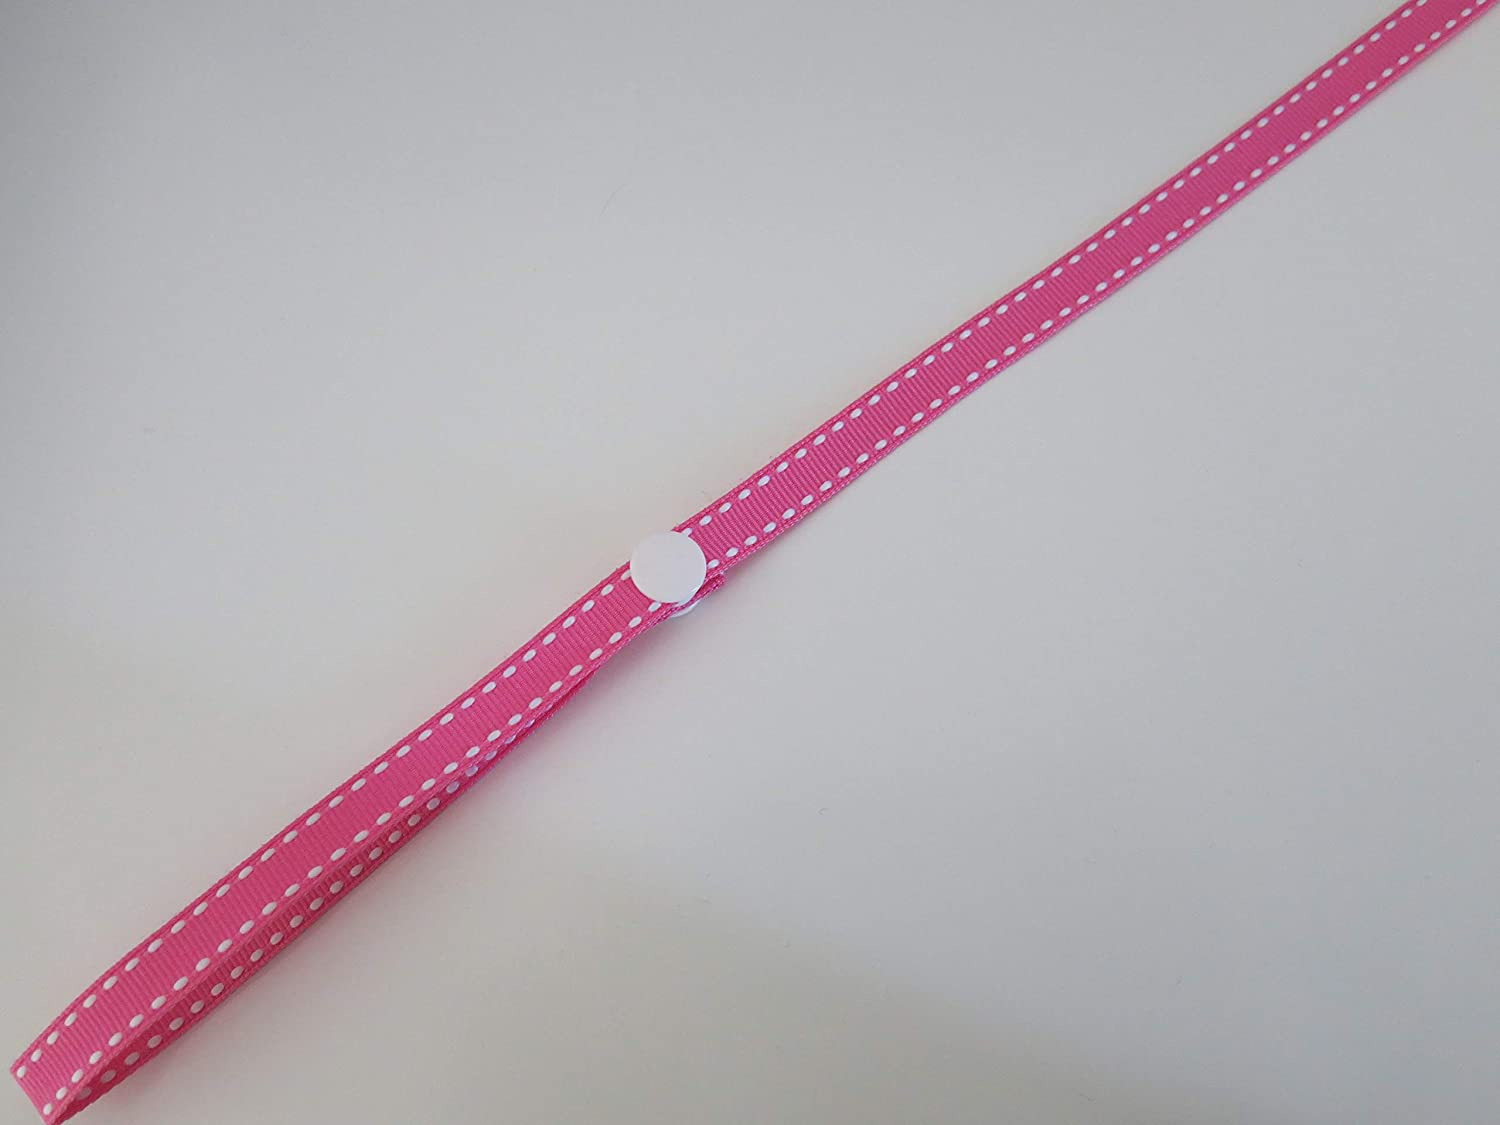 Chubby Cheeks Sophie The Giraffe Toy Harness Strap Saver Sitter Clip Pink Stitched